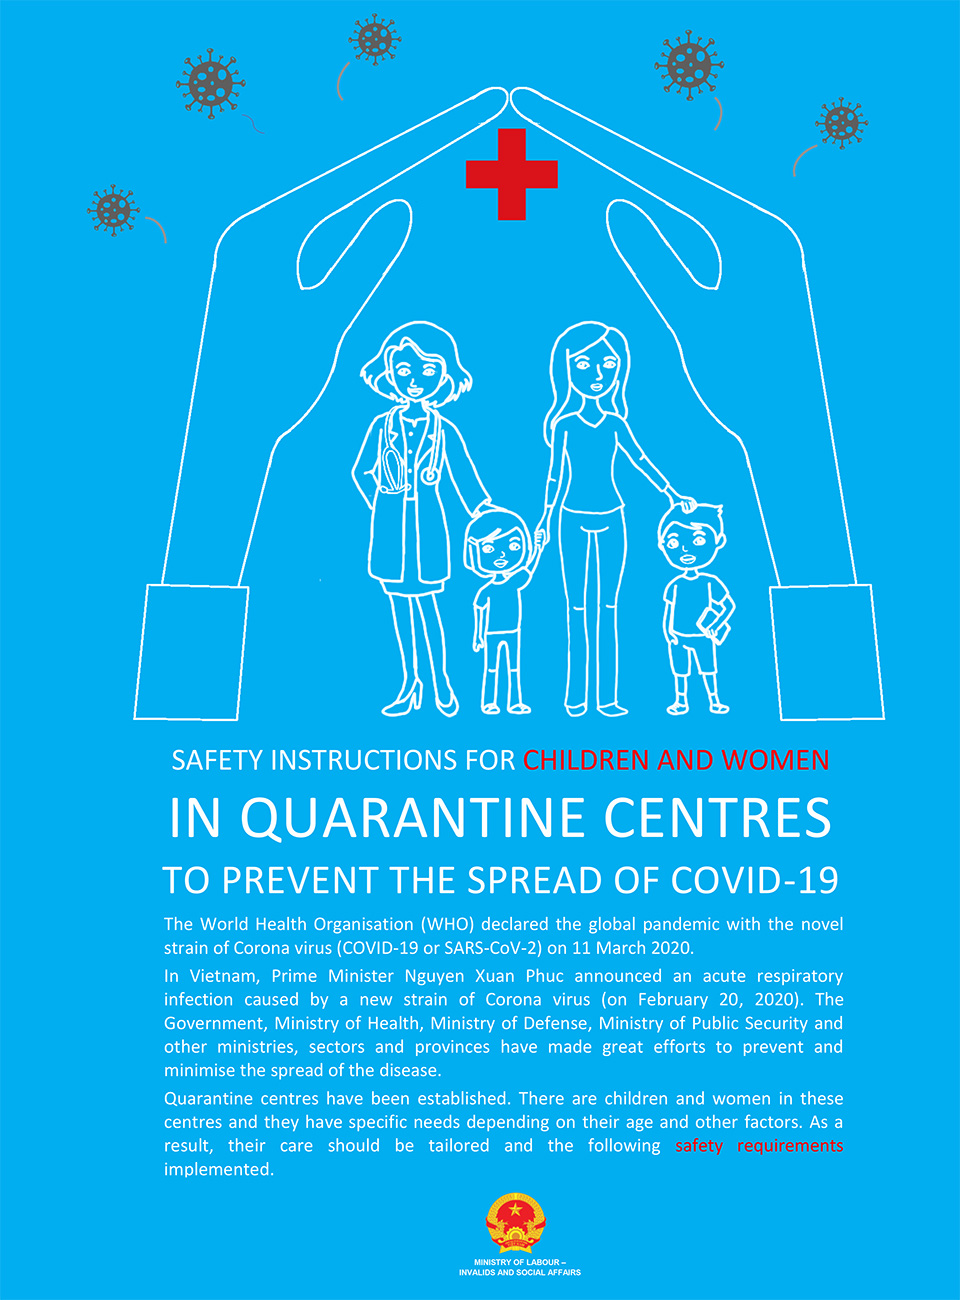 SAFETY INSTRUCTIONS FOR CHILDREN AND WOMEN IN QUARANTINE CENTRES TO PREVENT THE SPREAD OF COVID-19